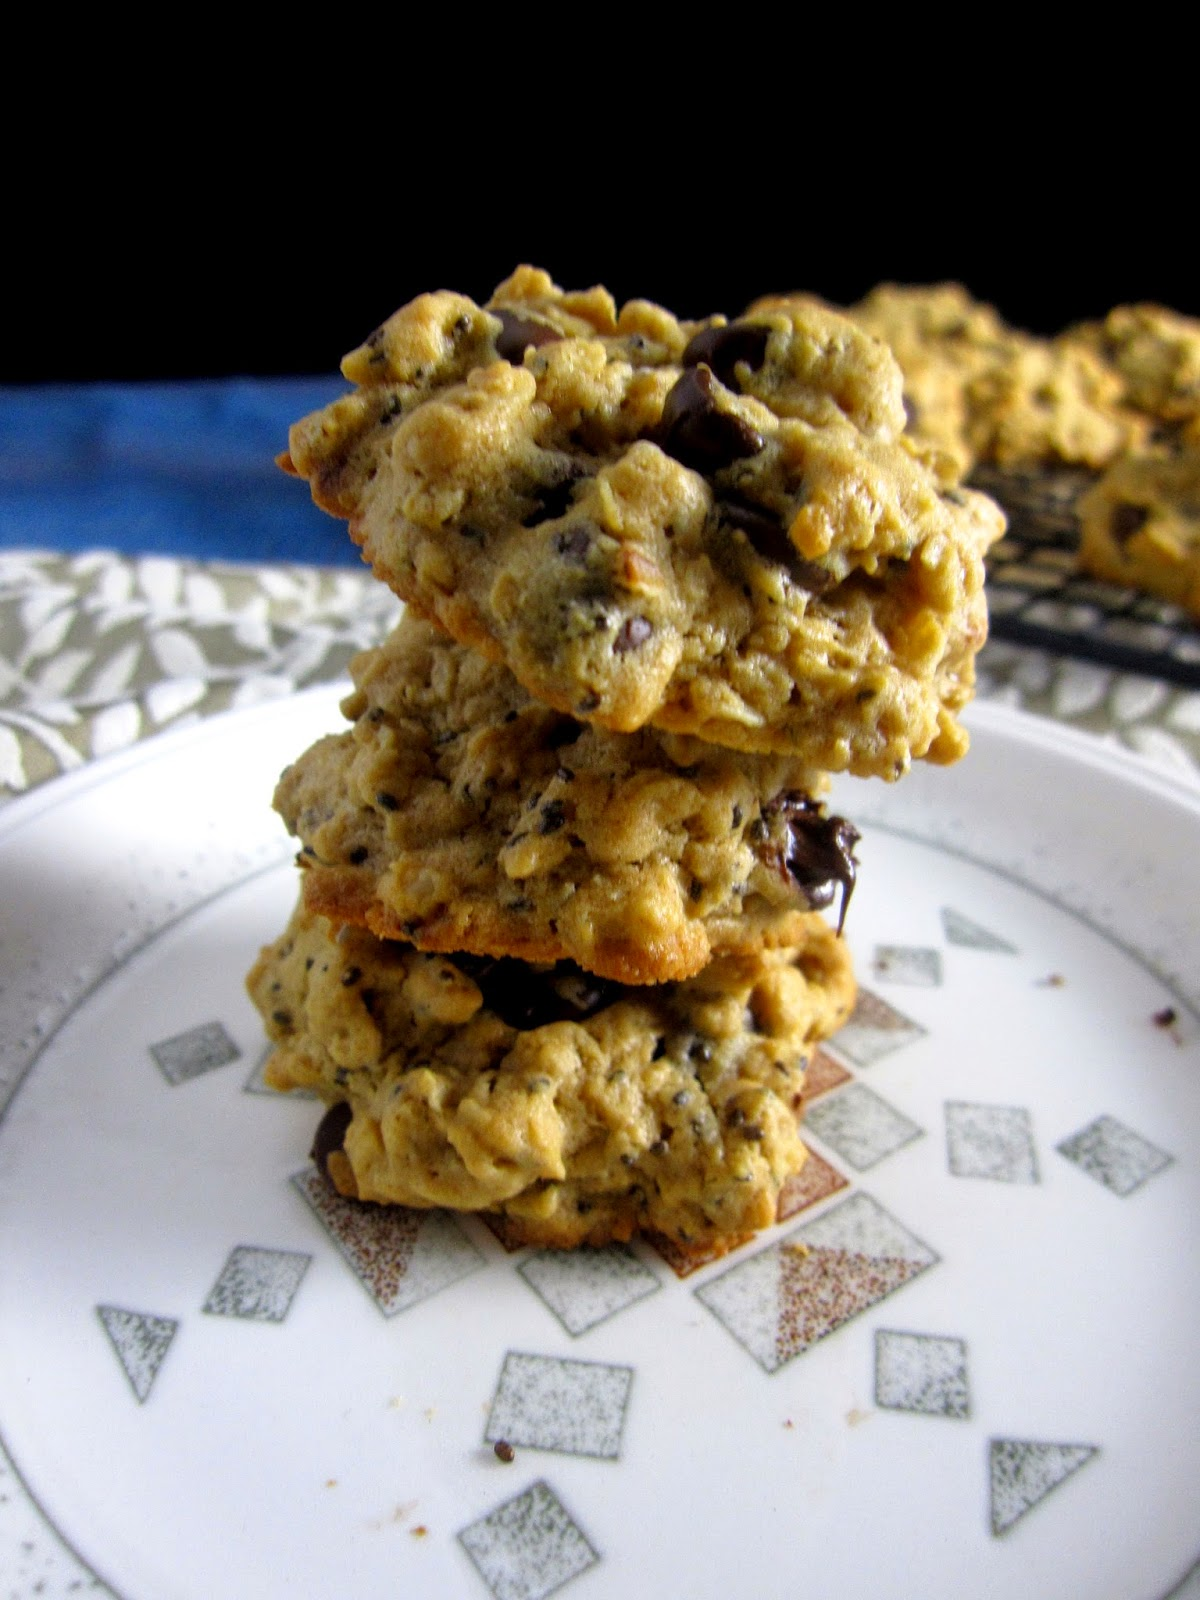 Chia Seed Peanut Butter Oatmeal Cookies